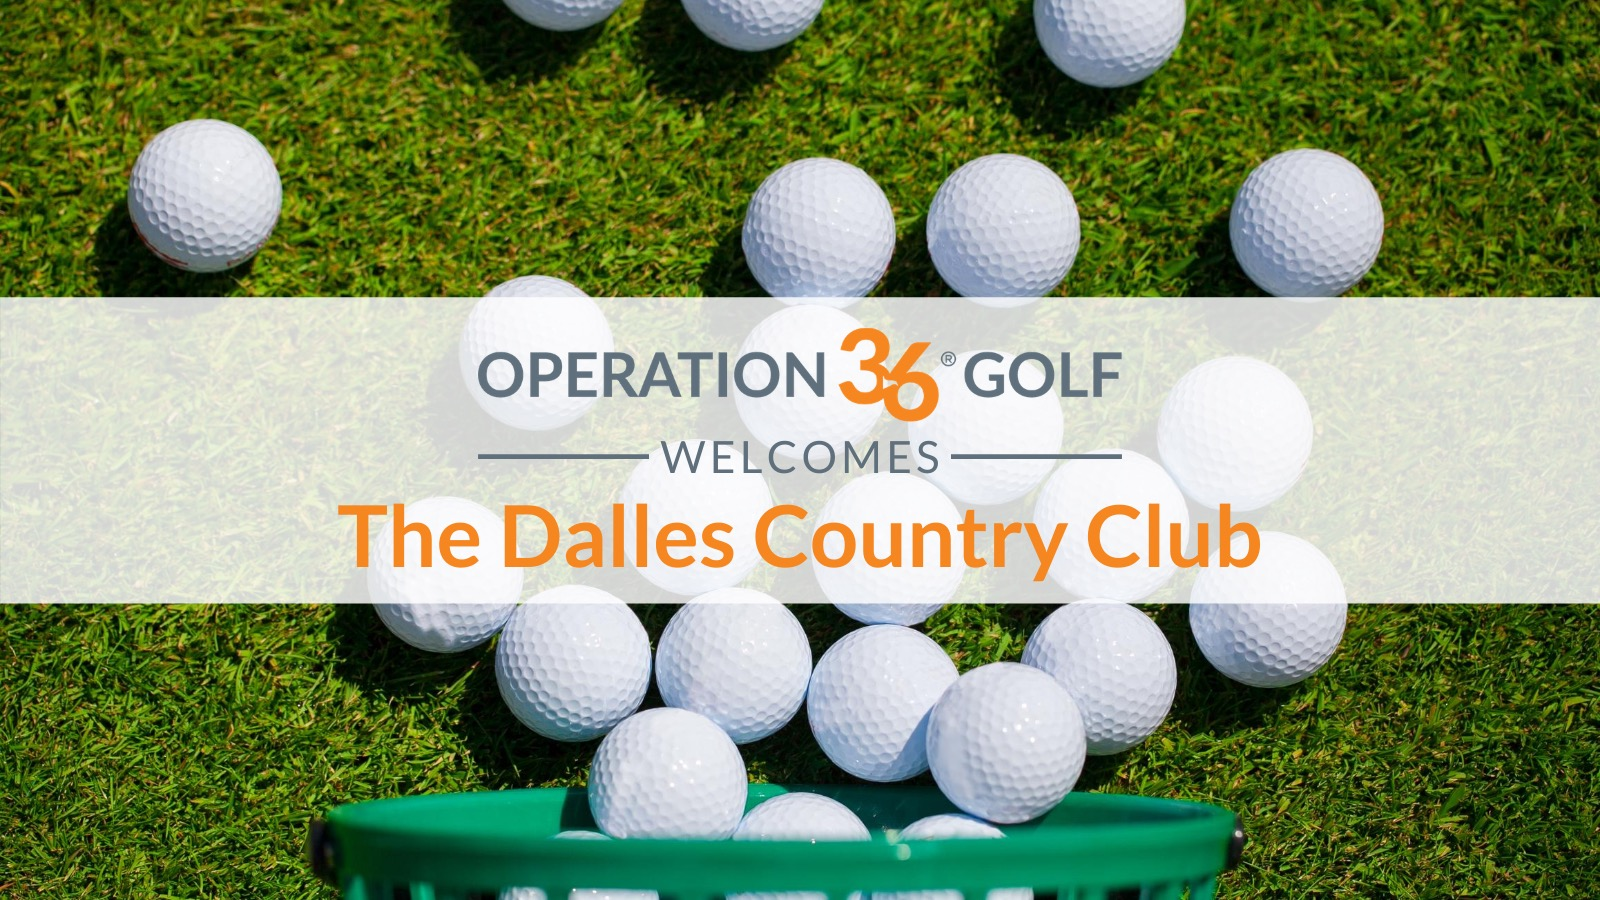 Op 36 Welcomes The Dalles Country Club